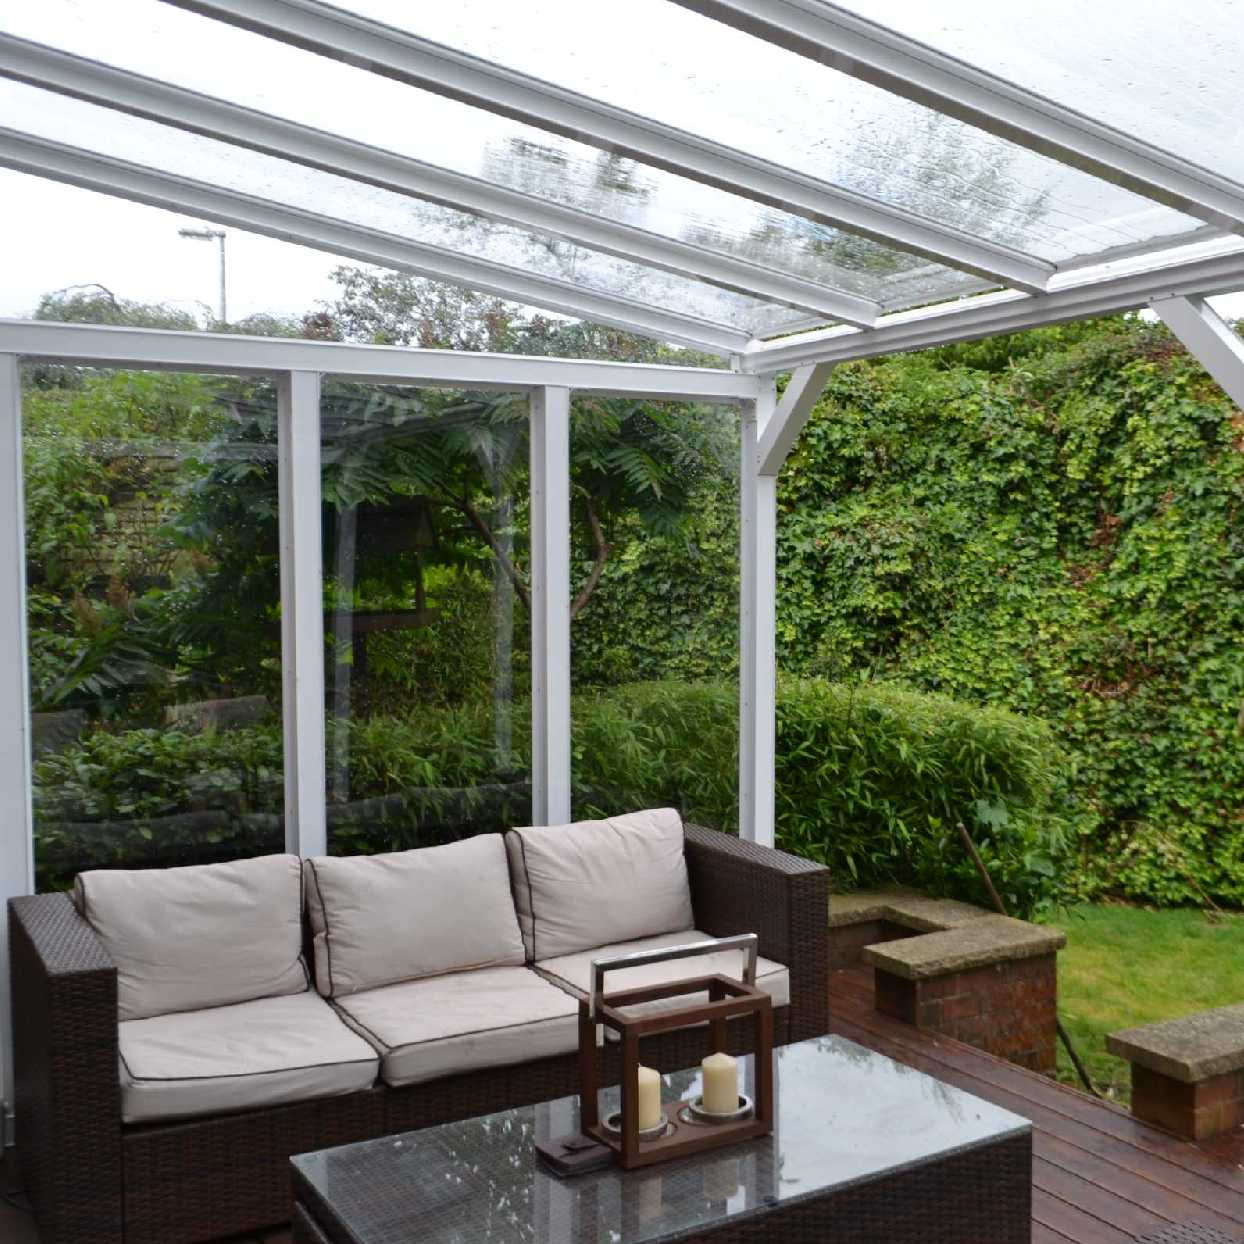 Great selection of Omega Smart Lean-To Canopy with 16mm Polycarbonate Glazing - 10.6m (W) x 2.5m (P), (5) Supporting Posts